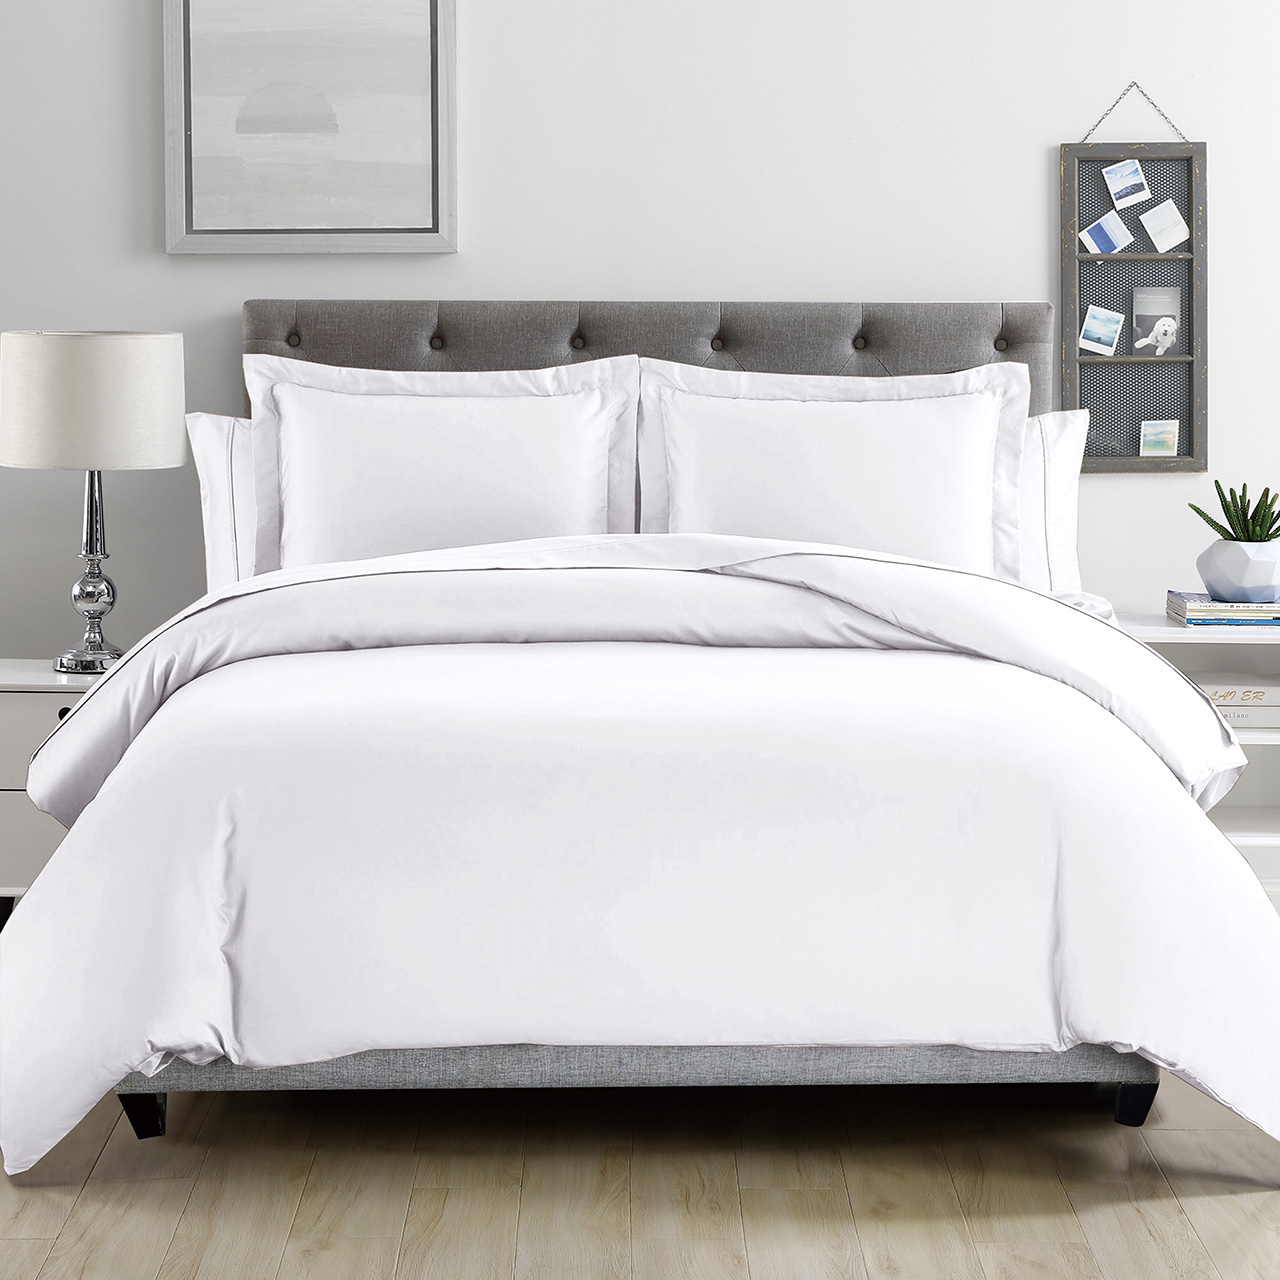 White Silky Bamboo Duvet Cover Set